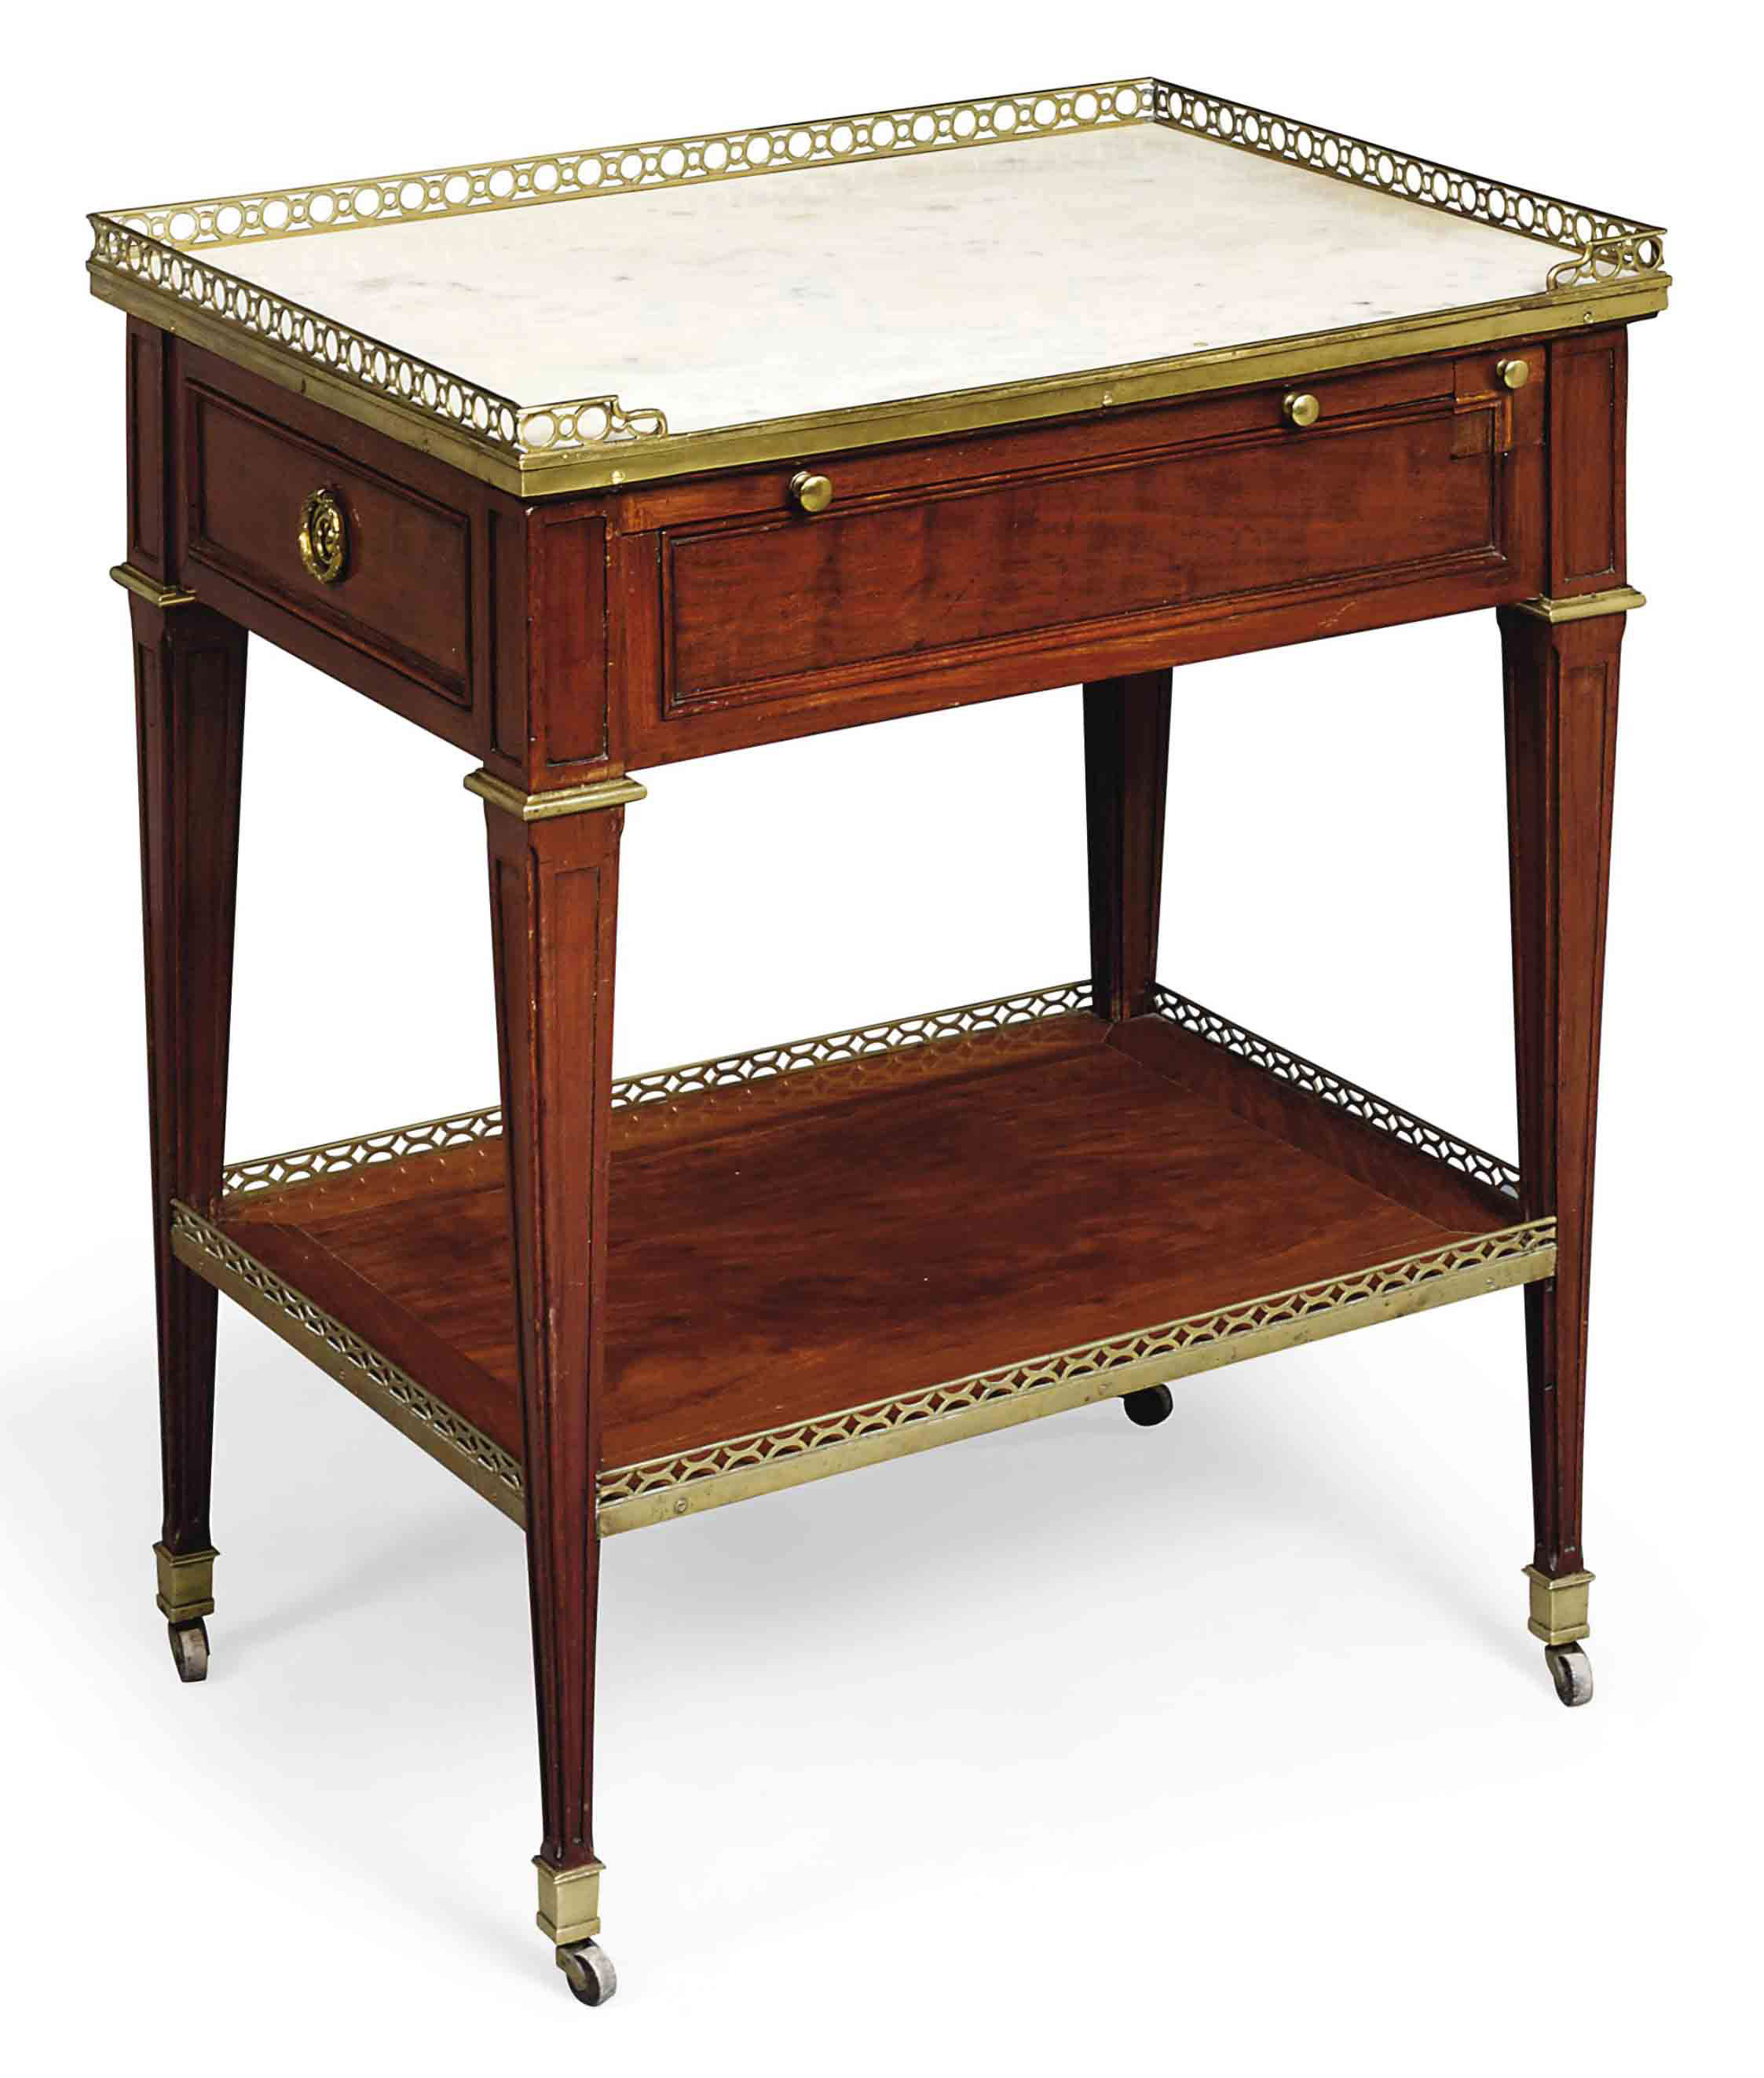 A ROYAL LOUIS XVI ORMOLU-MOUNTED MAHOGANY TABLE-A-ECRIRE